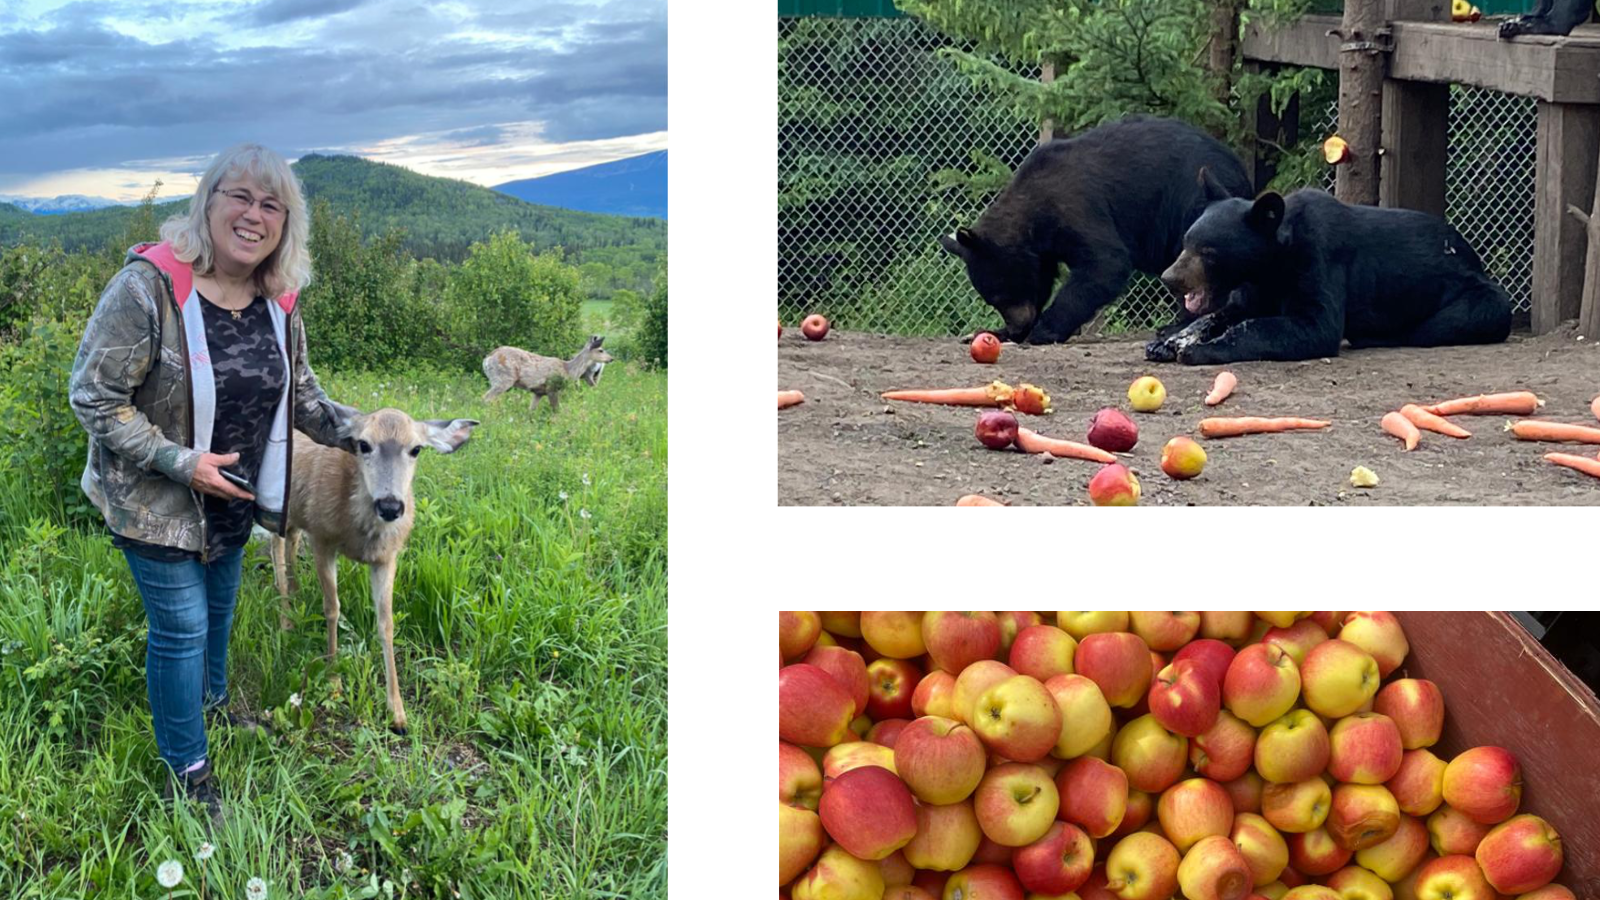 Left - NLWS Co-founder Angelika Langen visiting with Maple, an adult mule deer released from the shelter three years ago. | Top Right - Hungry yearling black bear cubs devouring their dinner. |Bottom Right - Apples purchased with donations to help feed the bears.